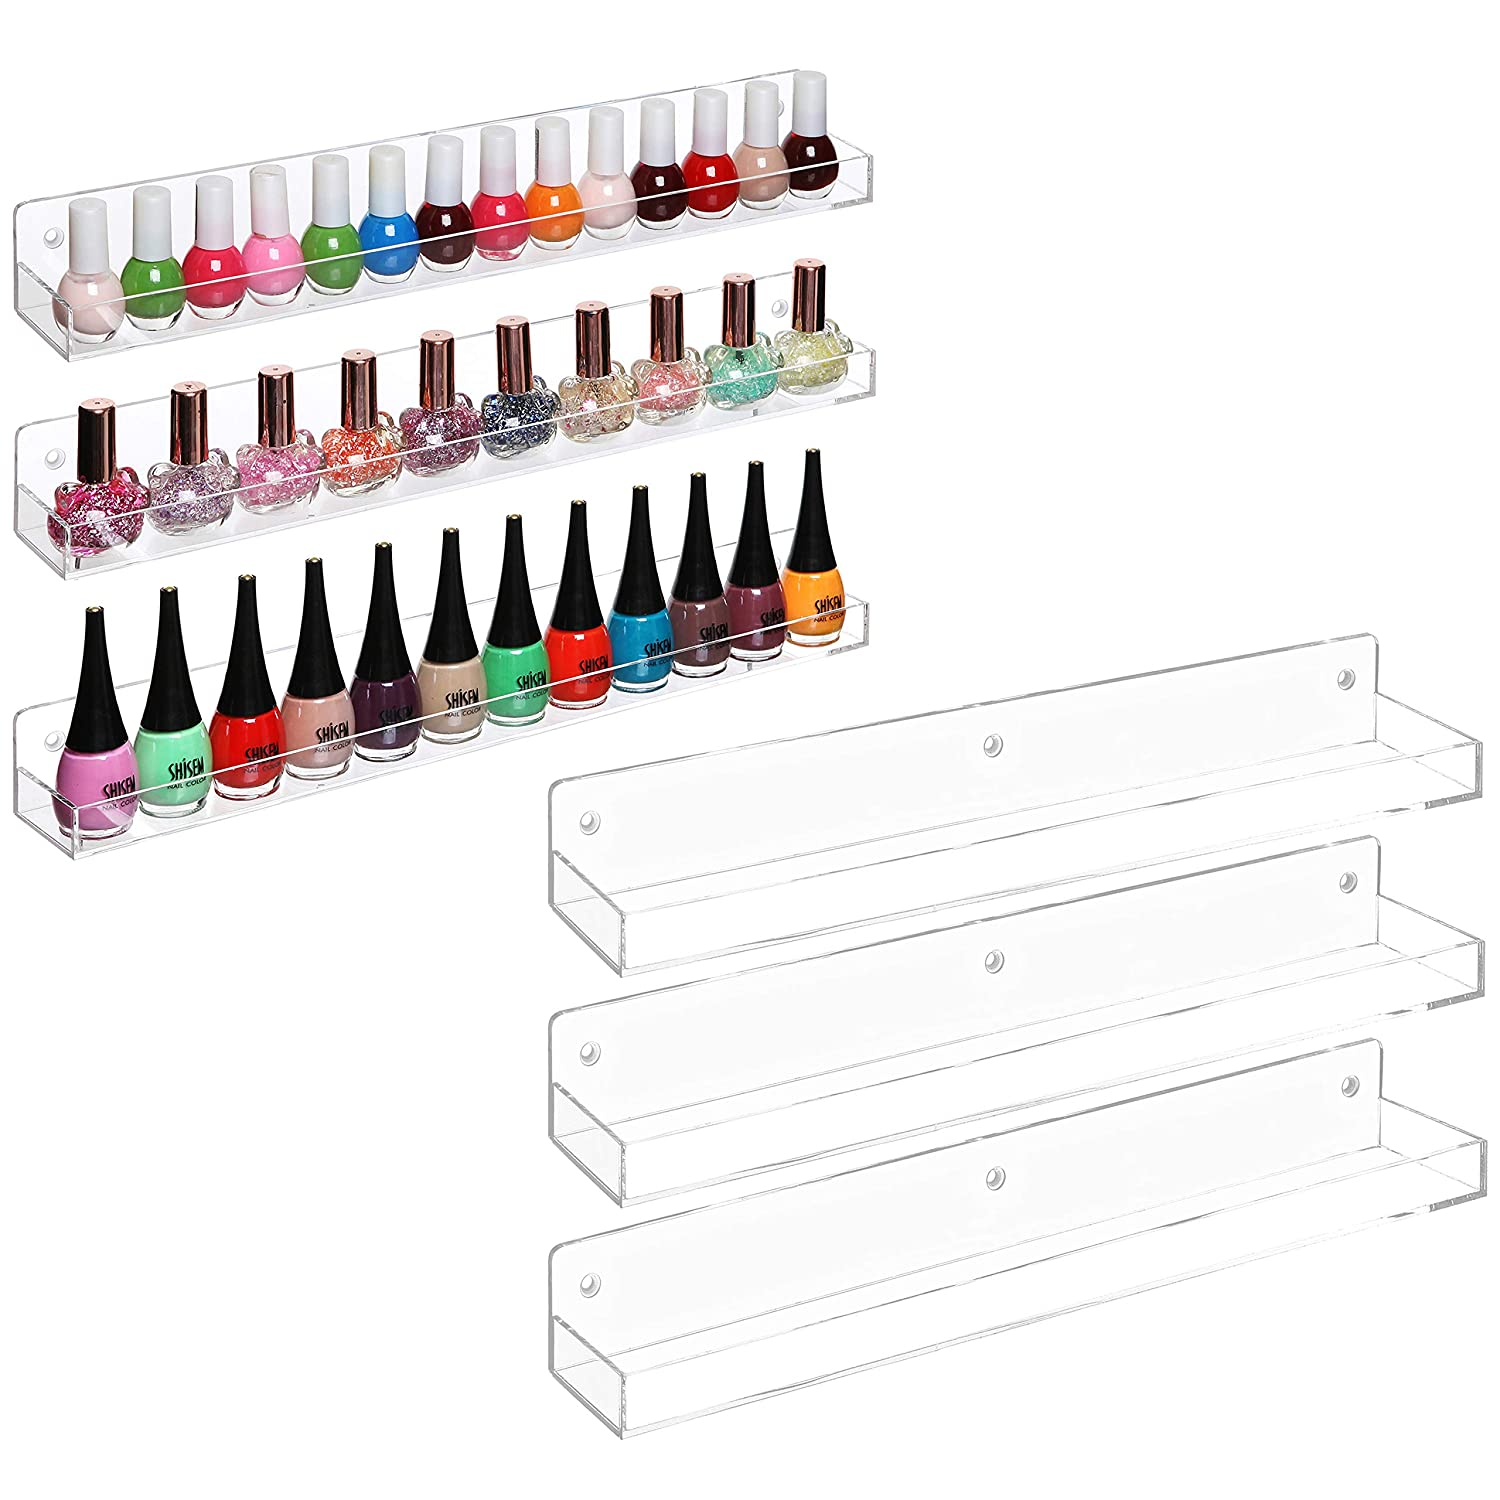 MyGift Wall-Mounted Clear Acrylic Nail Polish Floating Shelving Rack Essential Oil Display Organizer, Set of 6